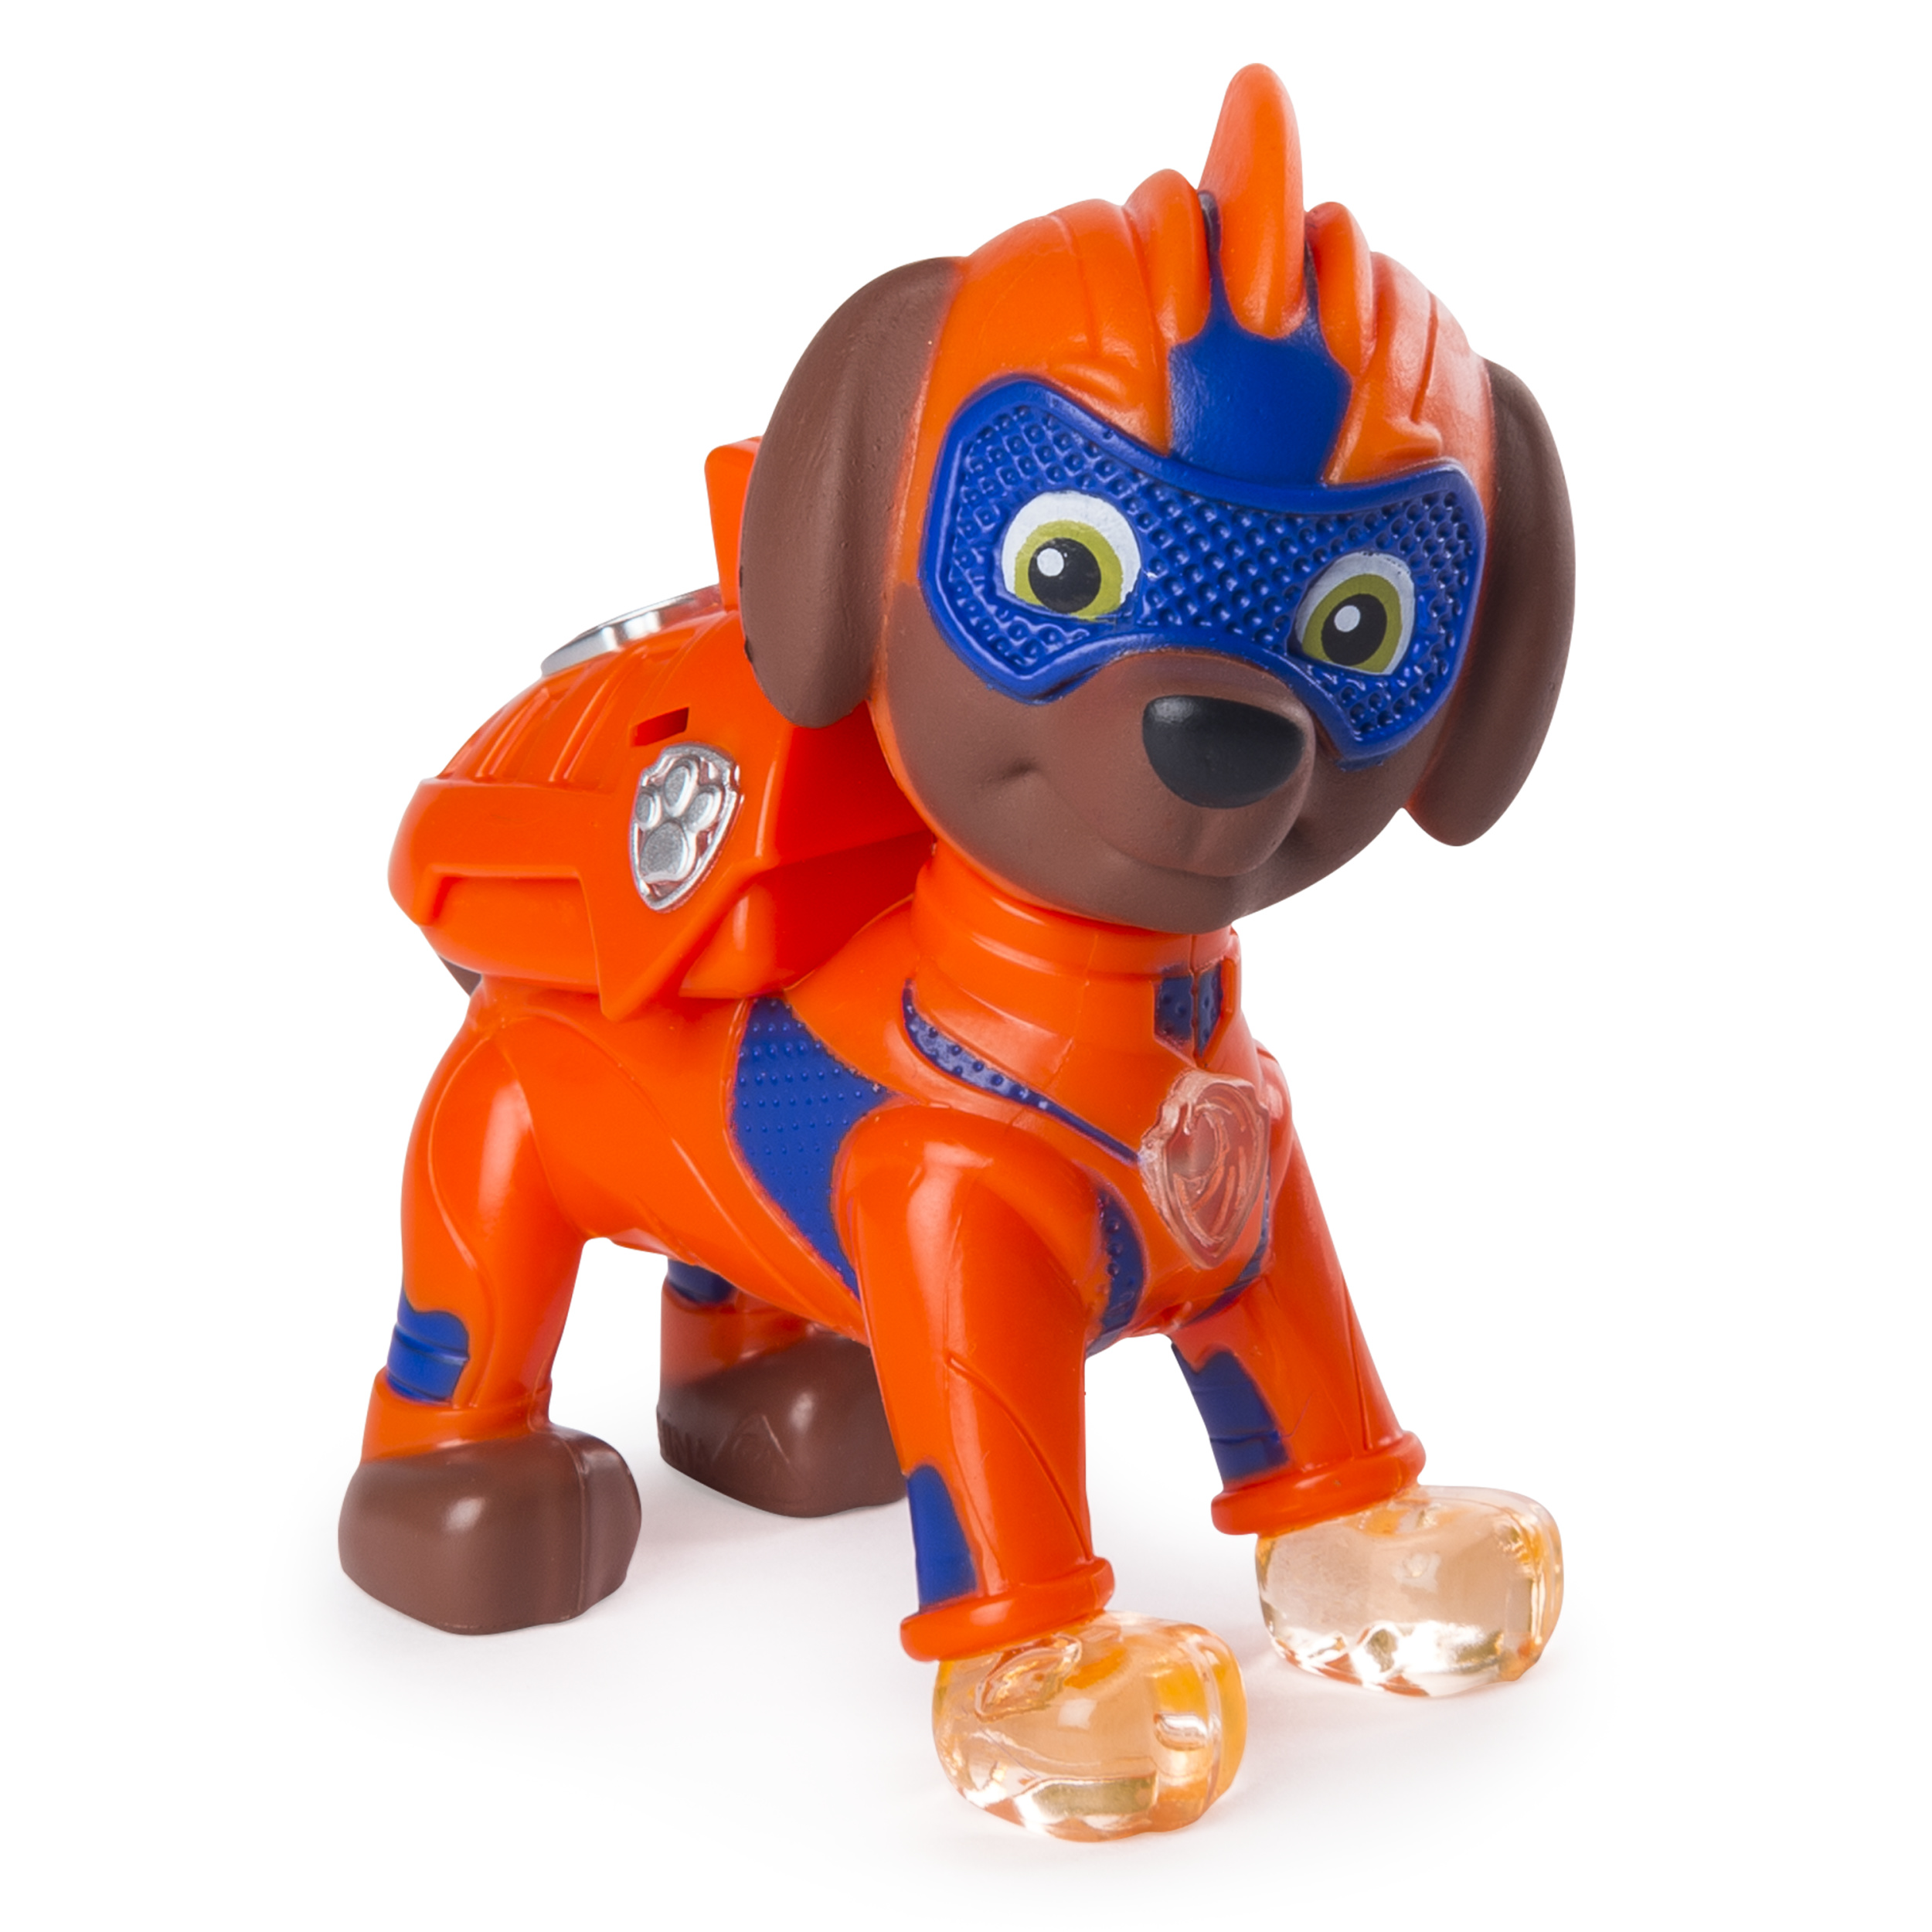 Nice PAW Patrol Mighty Pups Zuma Figure With Light Up Badge And Paws, For Ages